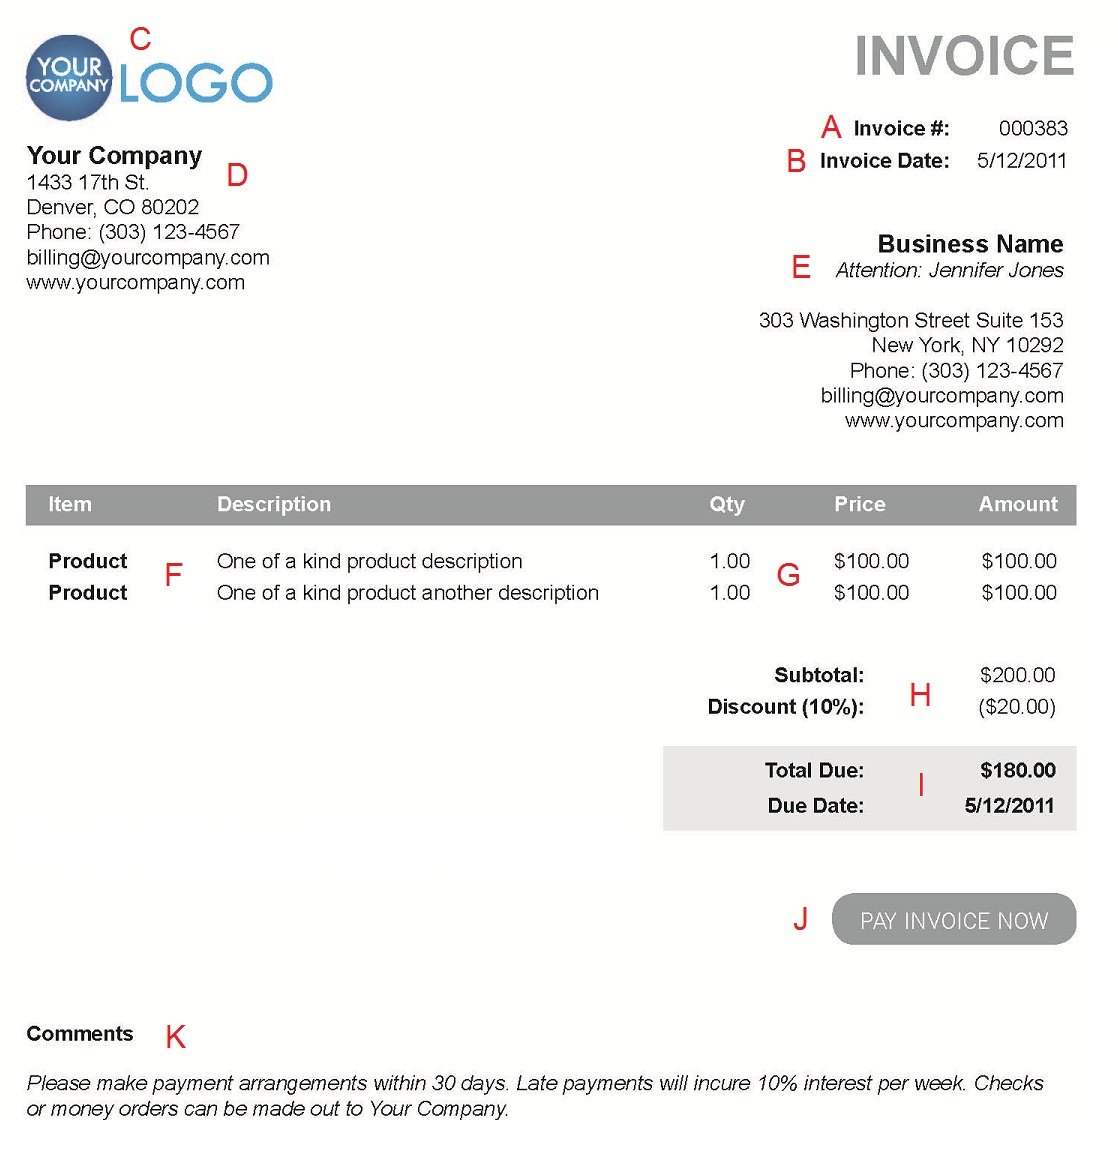 Patriotexpressus  Inspiring The  Different Sections Of An Electronic Payment Invoice With Fetching A  With Beauteous Invoice Order Also Invoicing Process In Addition Custom Invoice Template And View Invoice As Well As Invoice Forms Template Additionally Auto Repair Invoices From Paysimplecom With Patriotexpressus  Fetching The  Different Sections Of An Electronic Payment Invoice With Beauteous A  And Inspiring Invoice Order Also Invoicing Process In Addition Custom Invoice Template From Paysimplecom